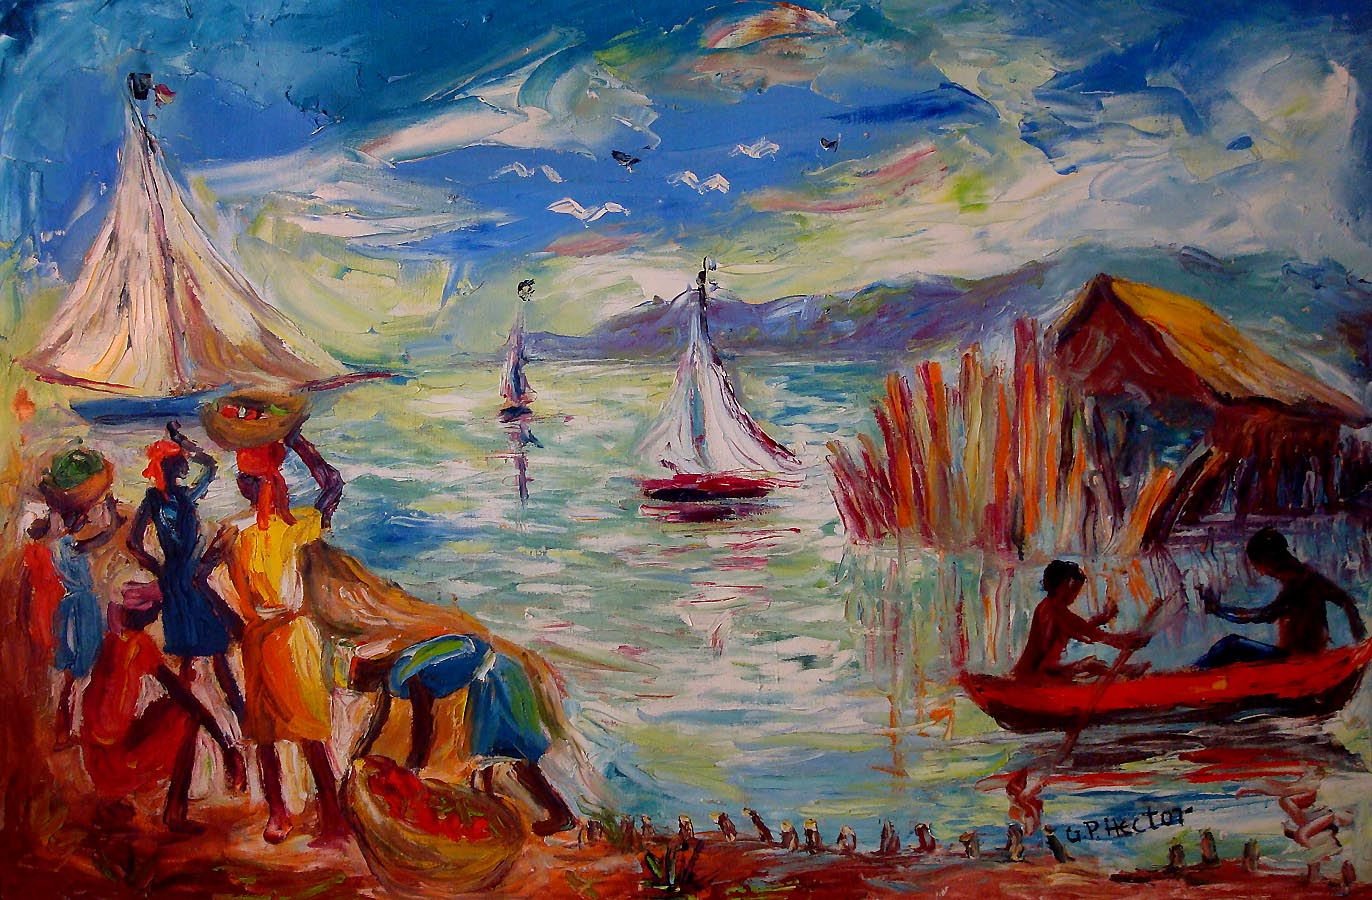 Le Musee often displays various forms of f.p.c art, such as this work by a Haitian artist.